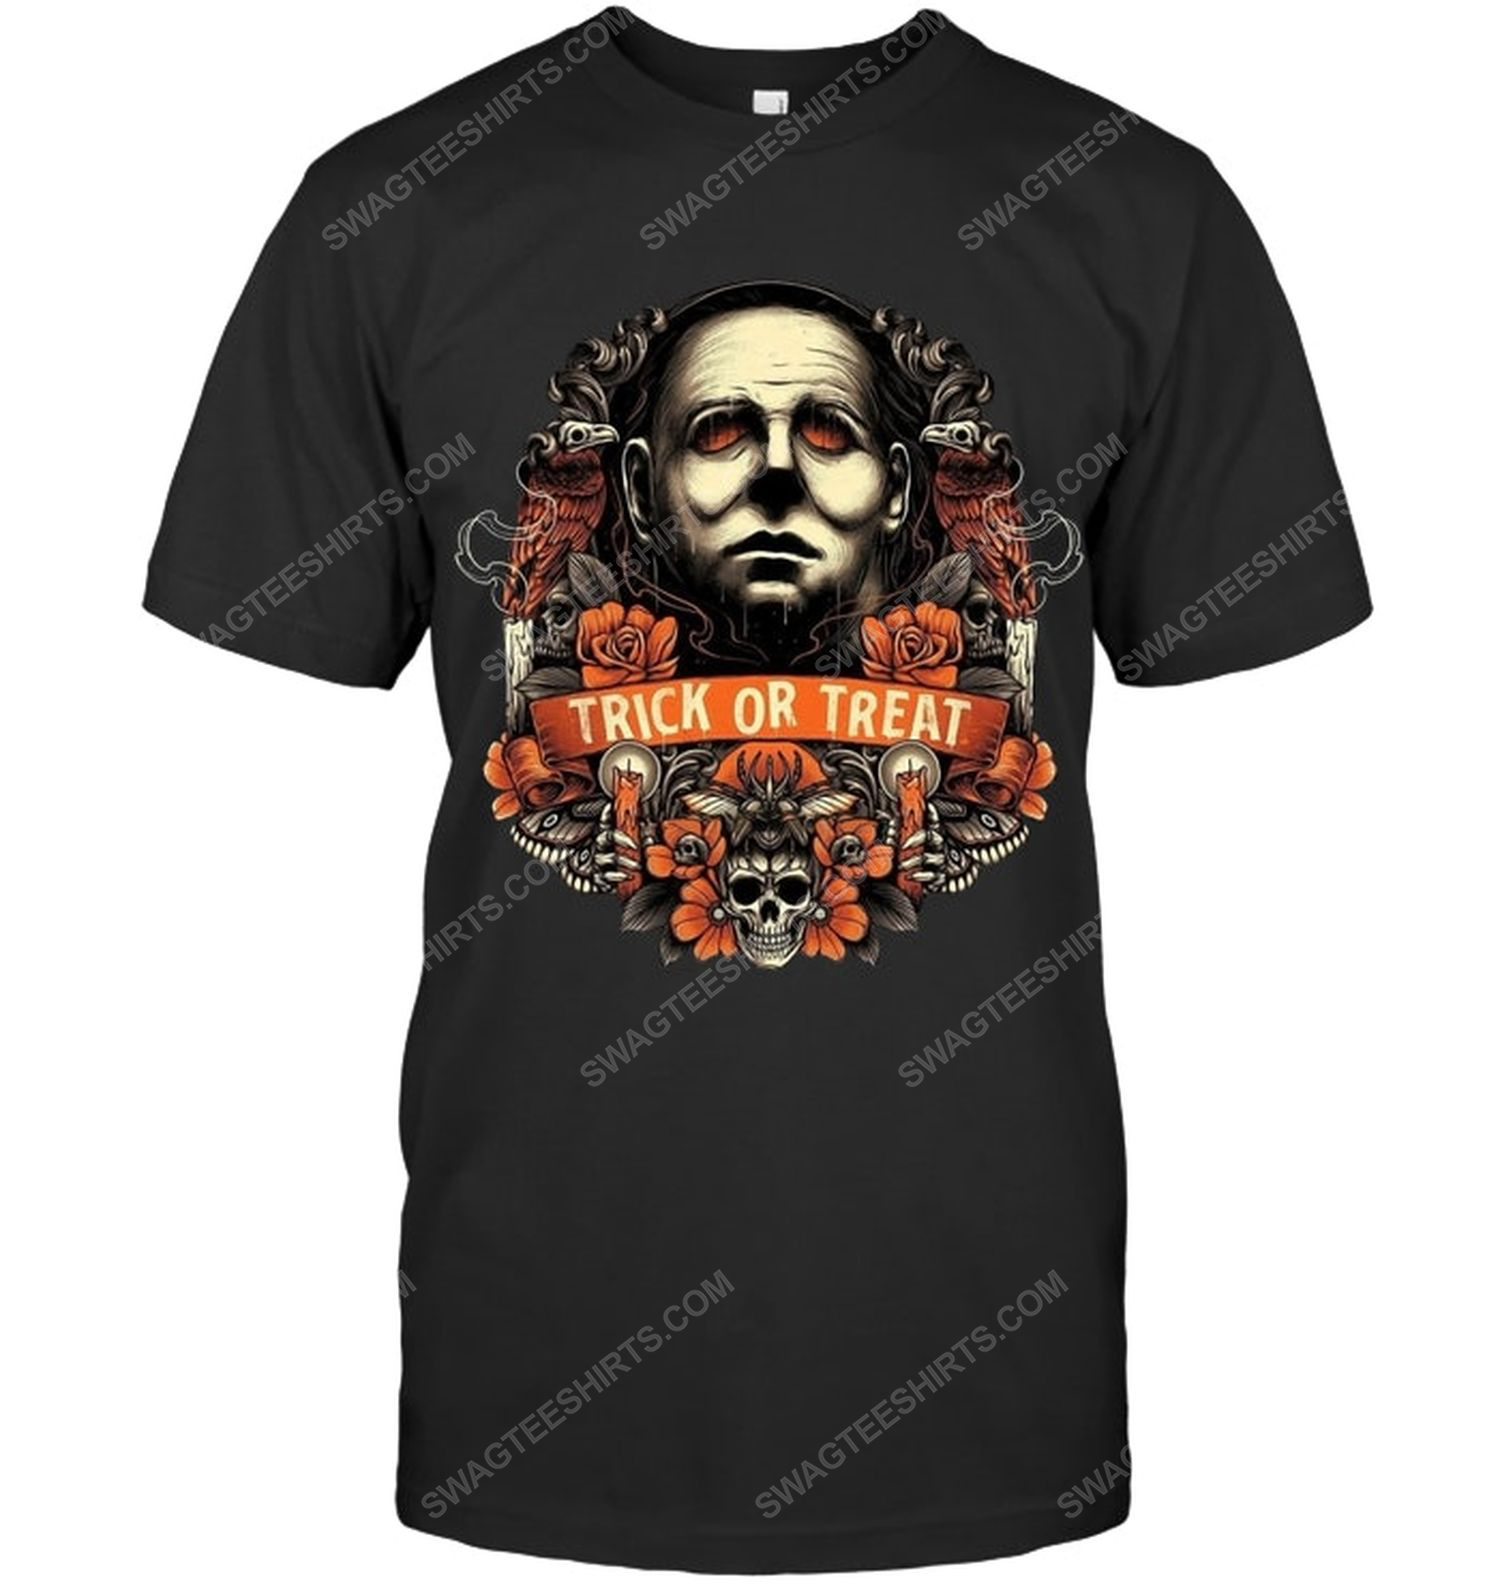 Michael myers trick or treat for halloween night shirt 1